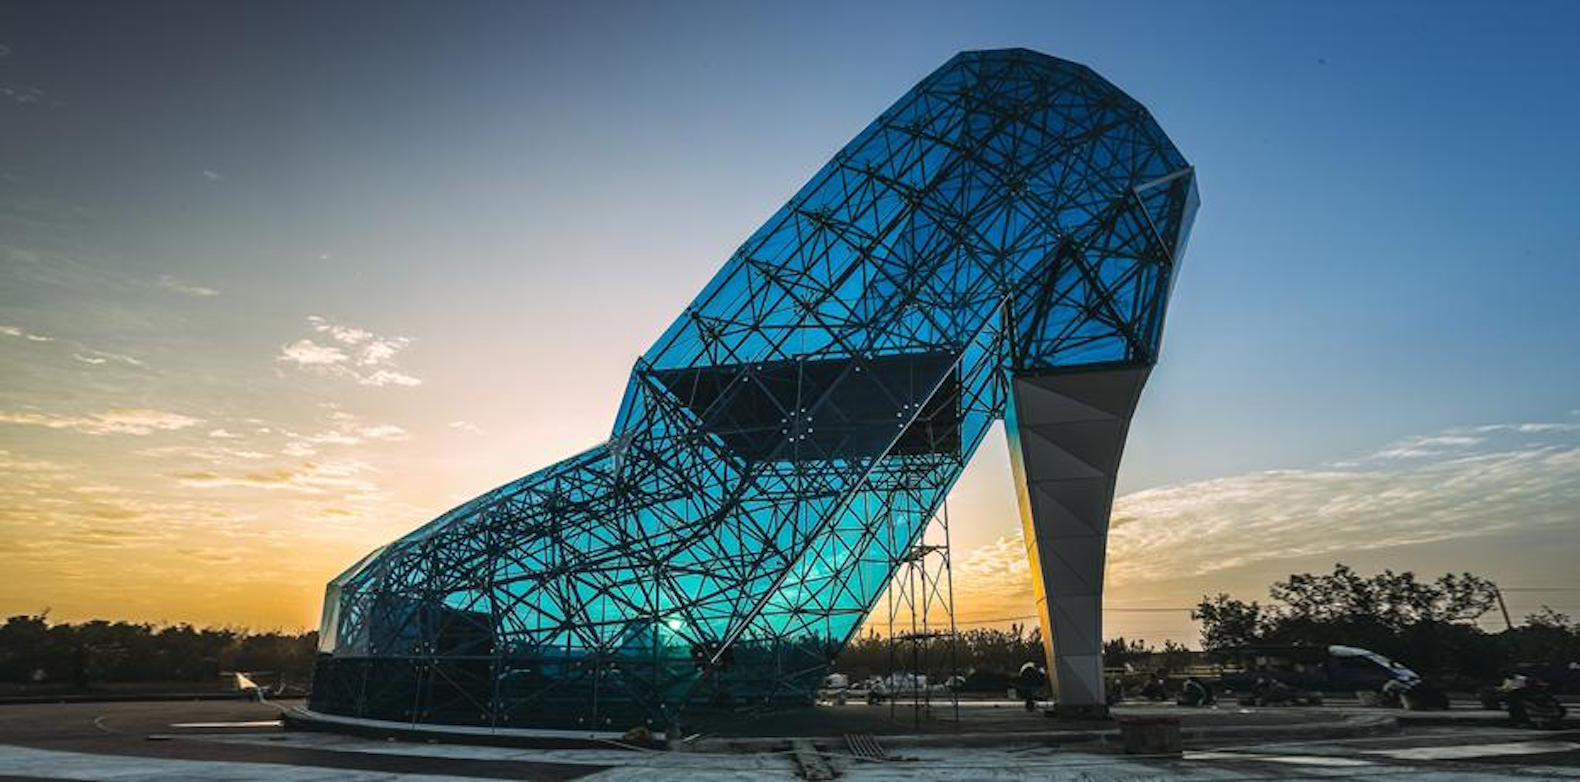 Taiwan builds gigantic Cinderella inspired glass slipper to lure